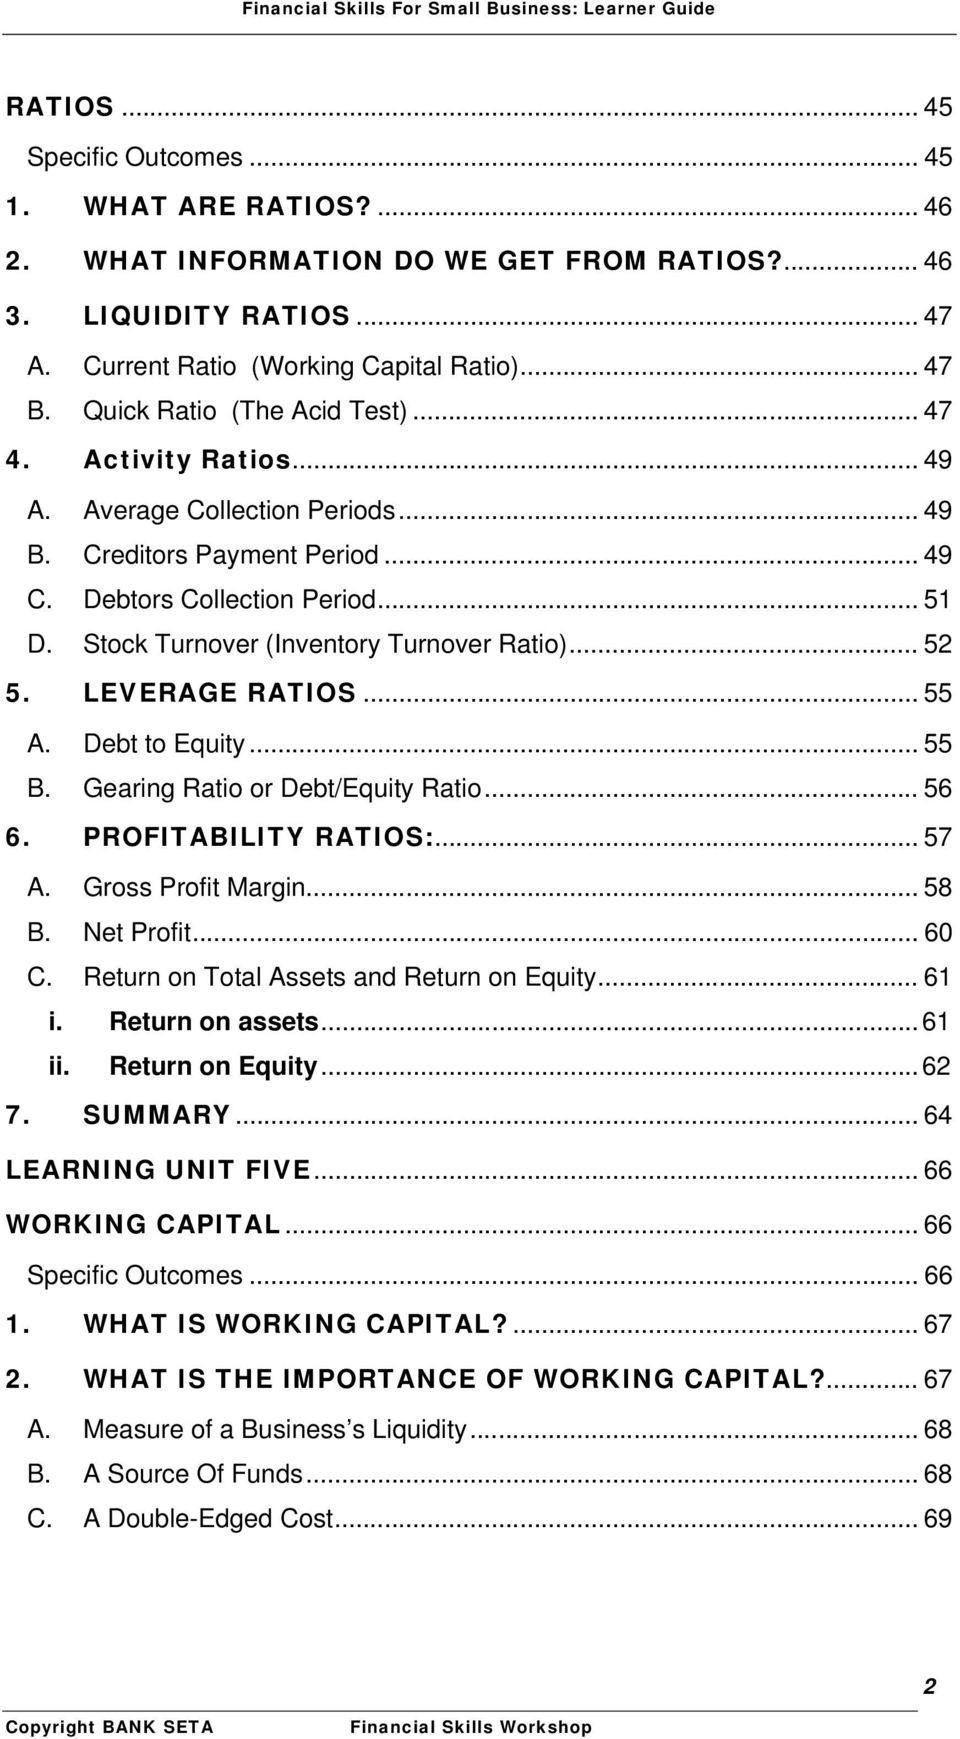 Stock Turnover (Inventory Turnover Ratio)... 52 5. LEVERAGE RATIOS... 55 A. Debt to Equity... 55 B. Gearing Ratio or Debt/Equity Ratio... 56 6. PROFITABILITY RATIOS:... 57 A. Gross Profit Margin.